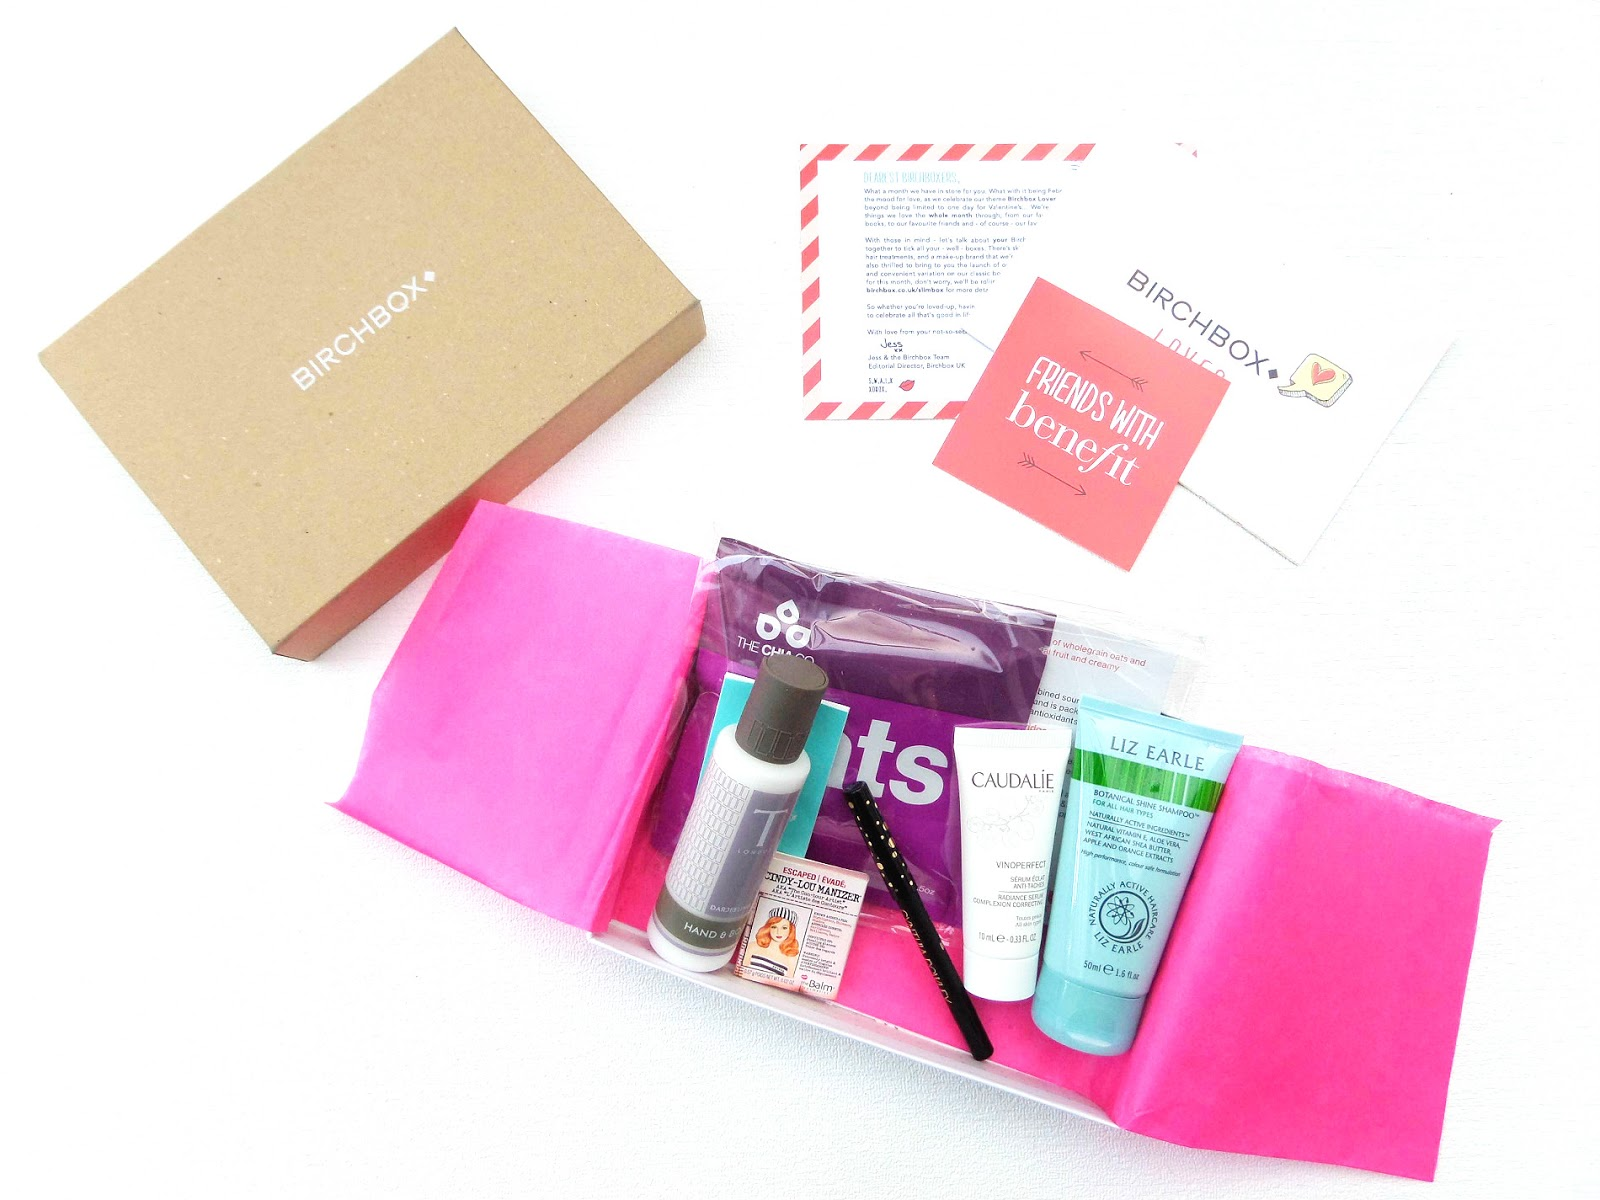 February Birchbox | Love Is In The Air Review